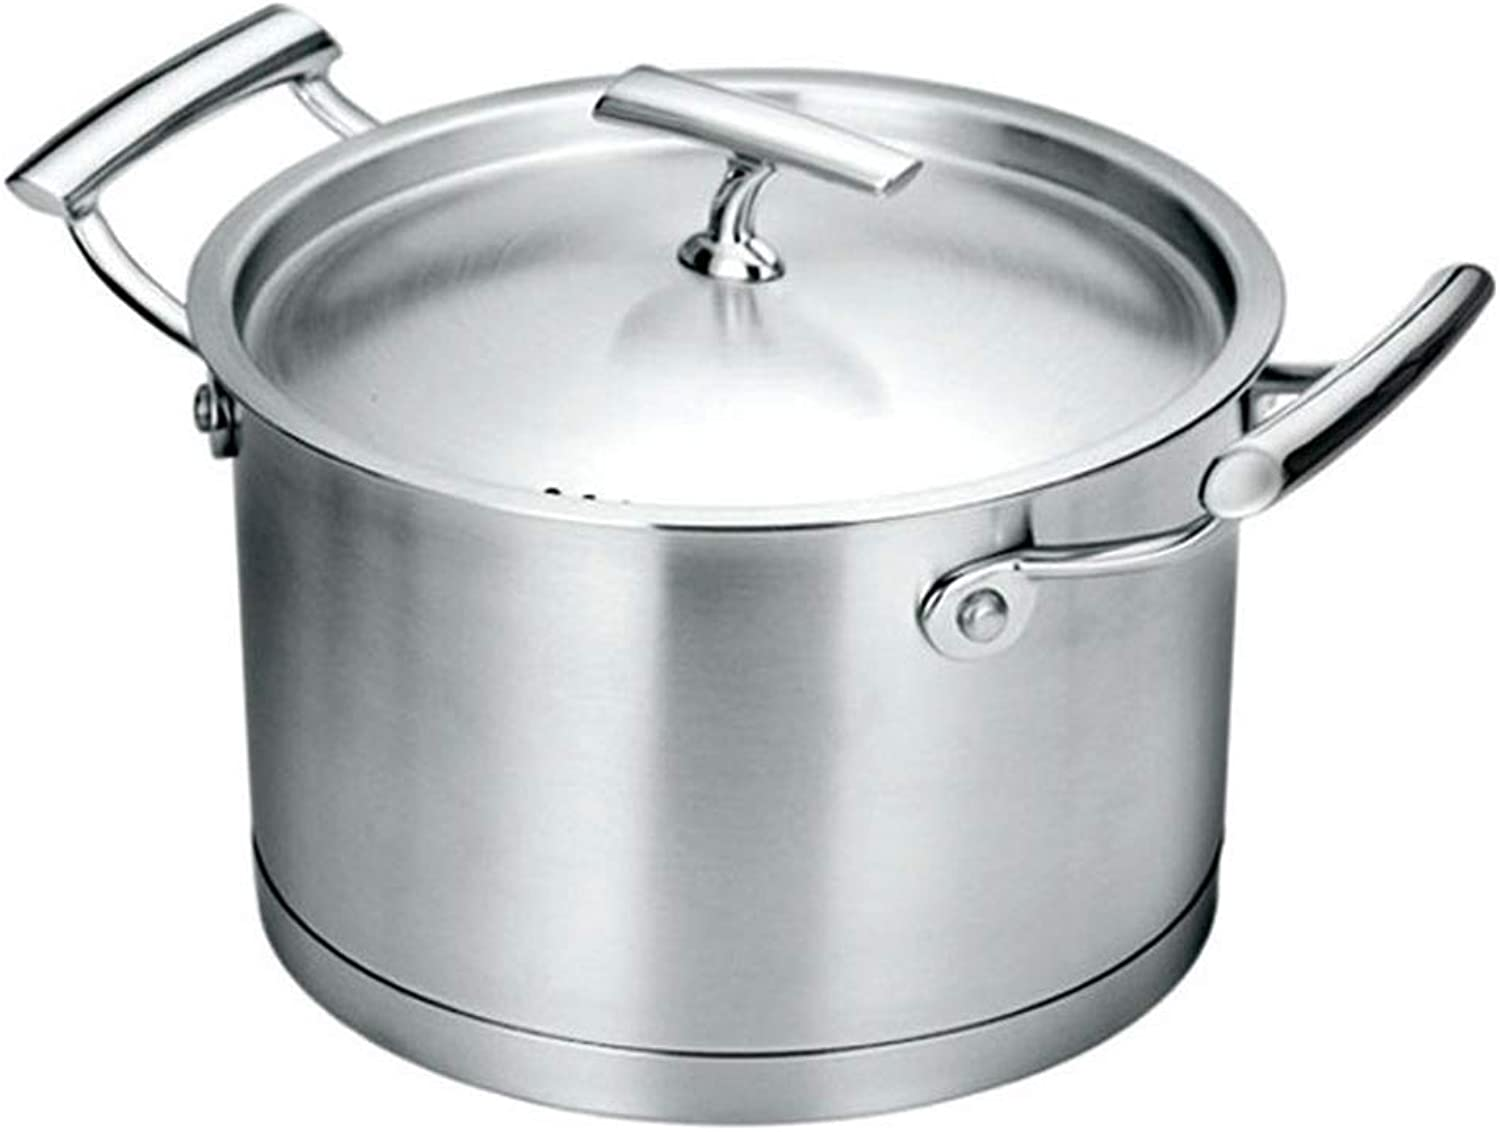 LLDDP Cooking Equipment Stockpot with Stainless Steel lid Casserole Pot Durable Enough Suitable for All Stove Tops Including Induction DishwasherSafe Healthy cookware,Silver Frying Pan